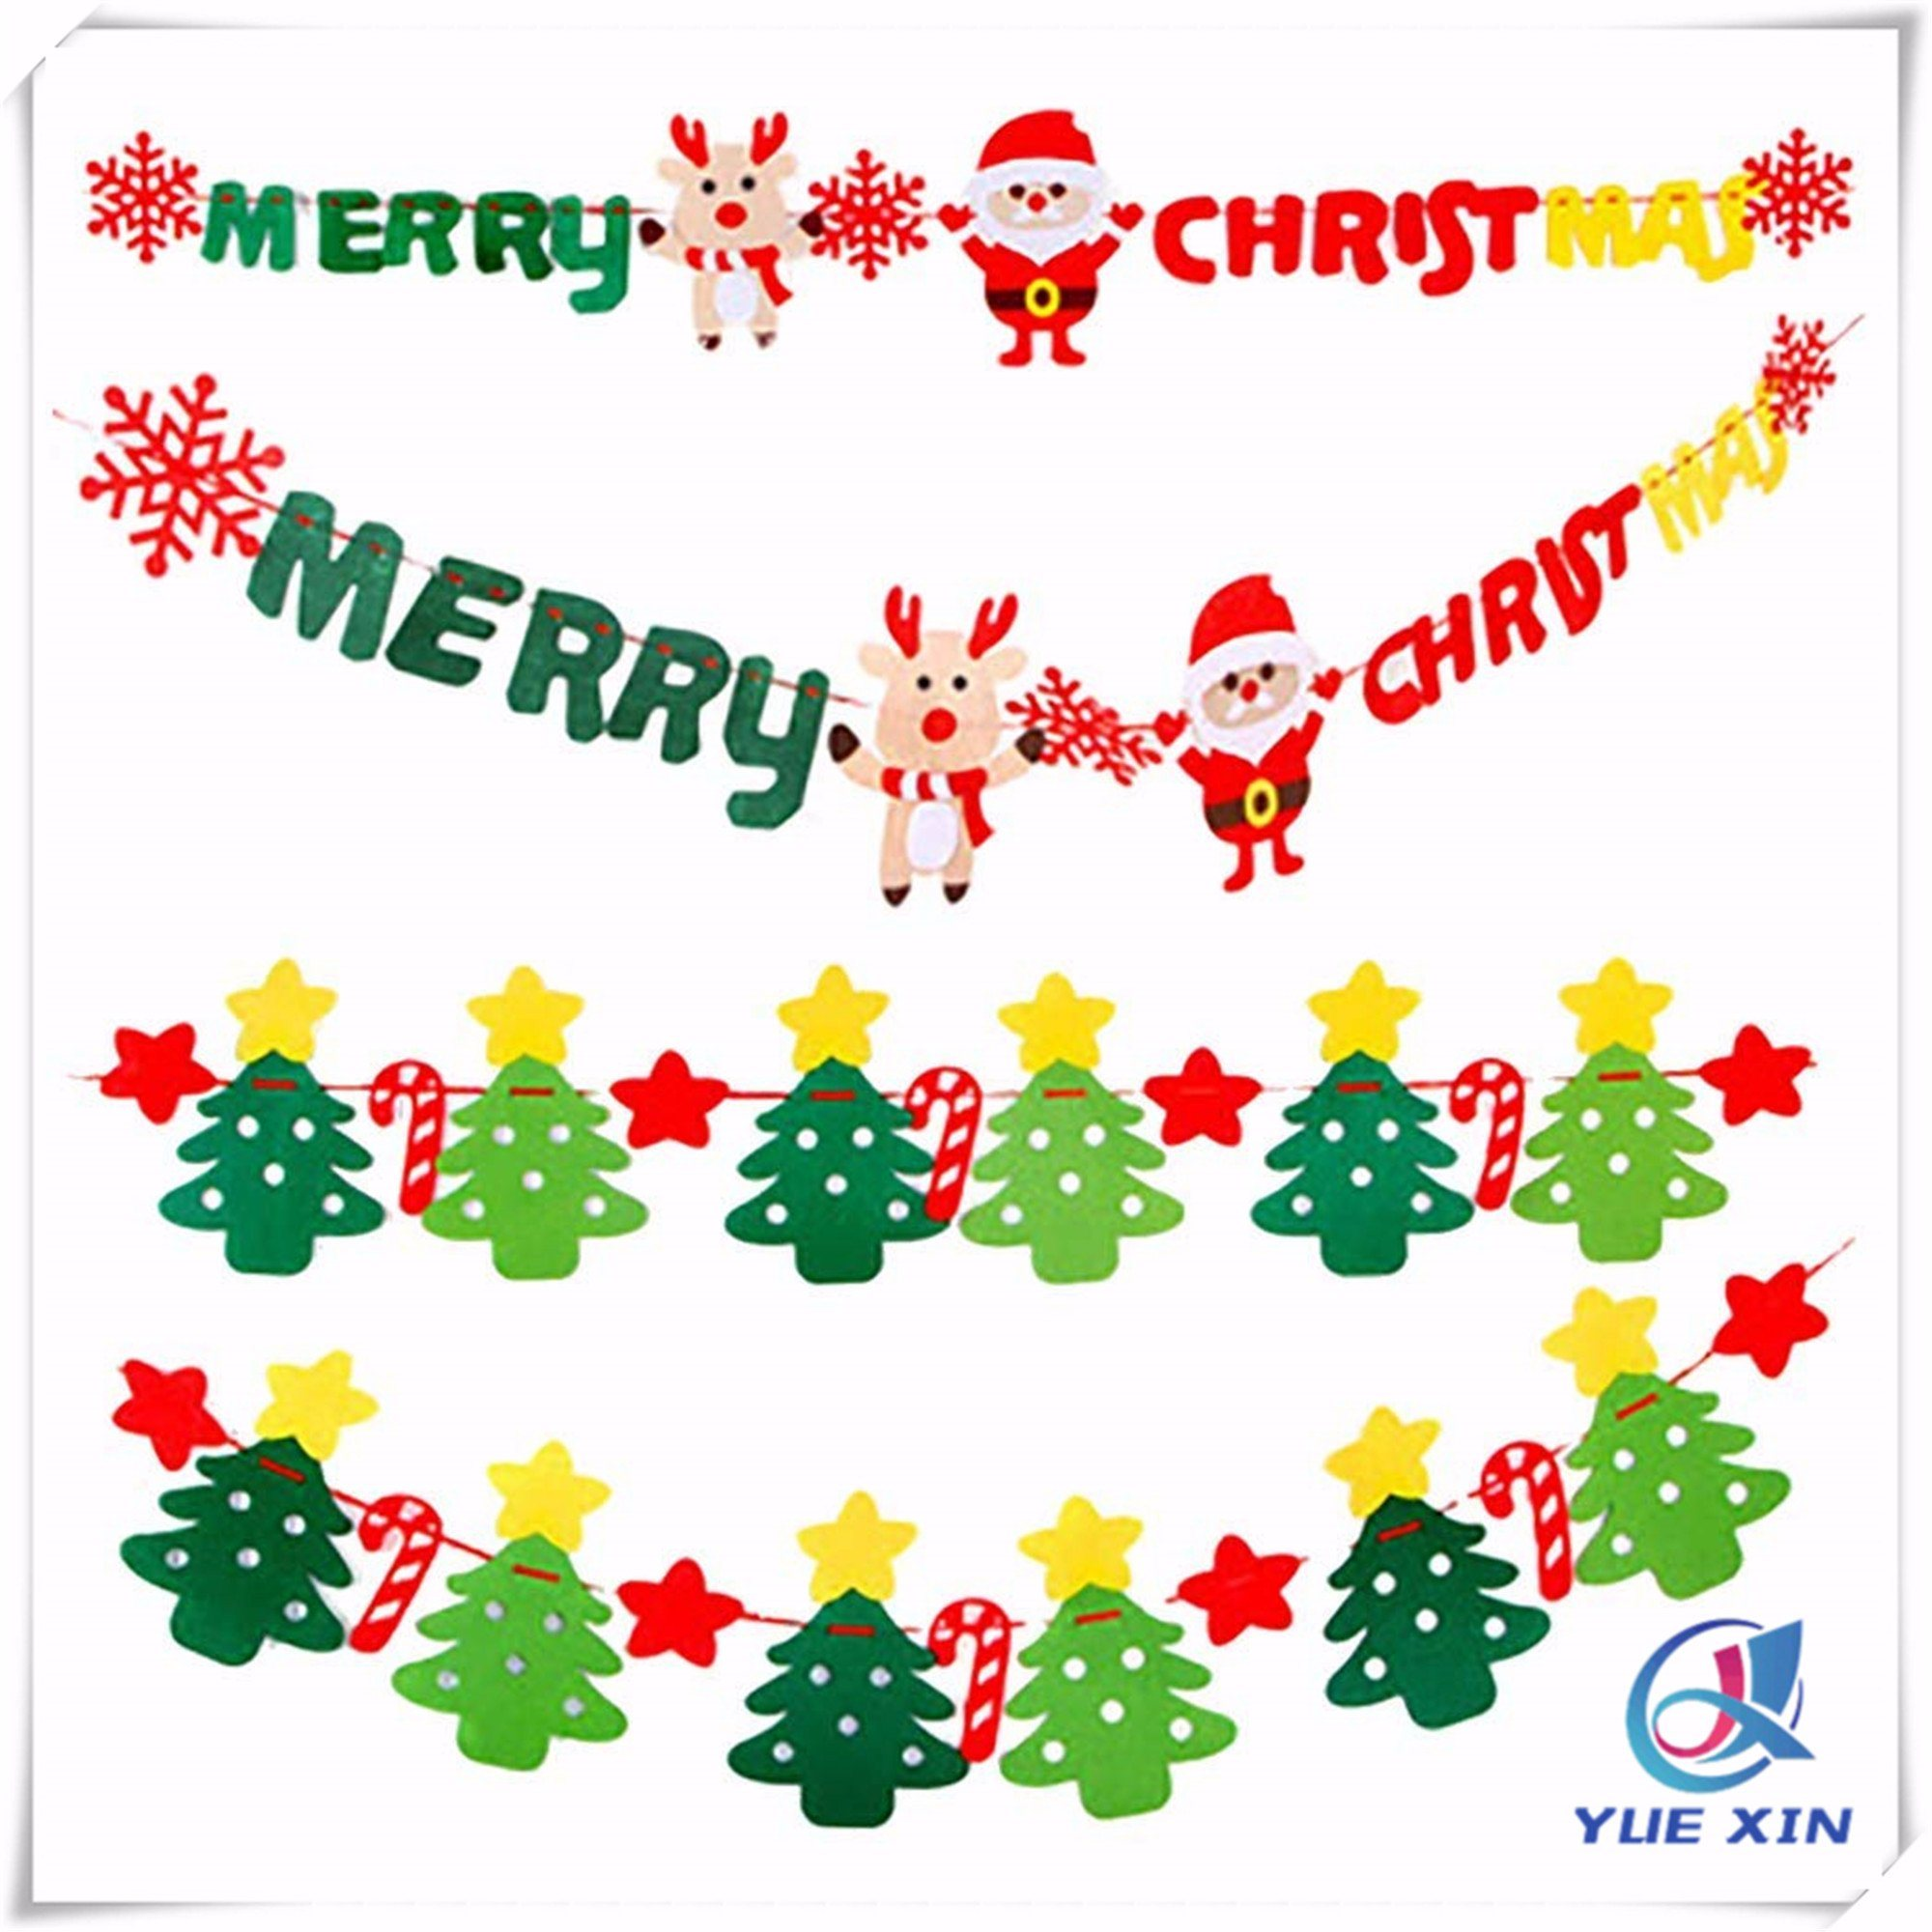 china merry xmas happy christmas banner colorful felt banners christmas decoration china christmas banner and felt banners price hot item merry xmas happy christmas banner colorful felt banners christmas decoration